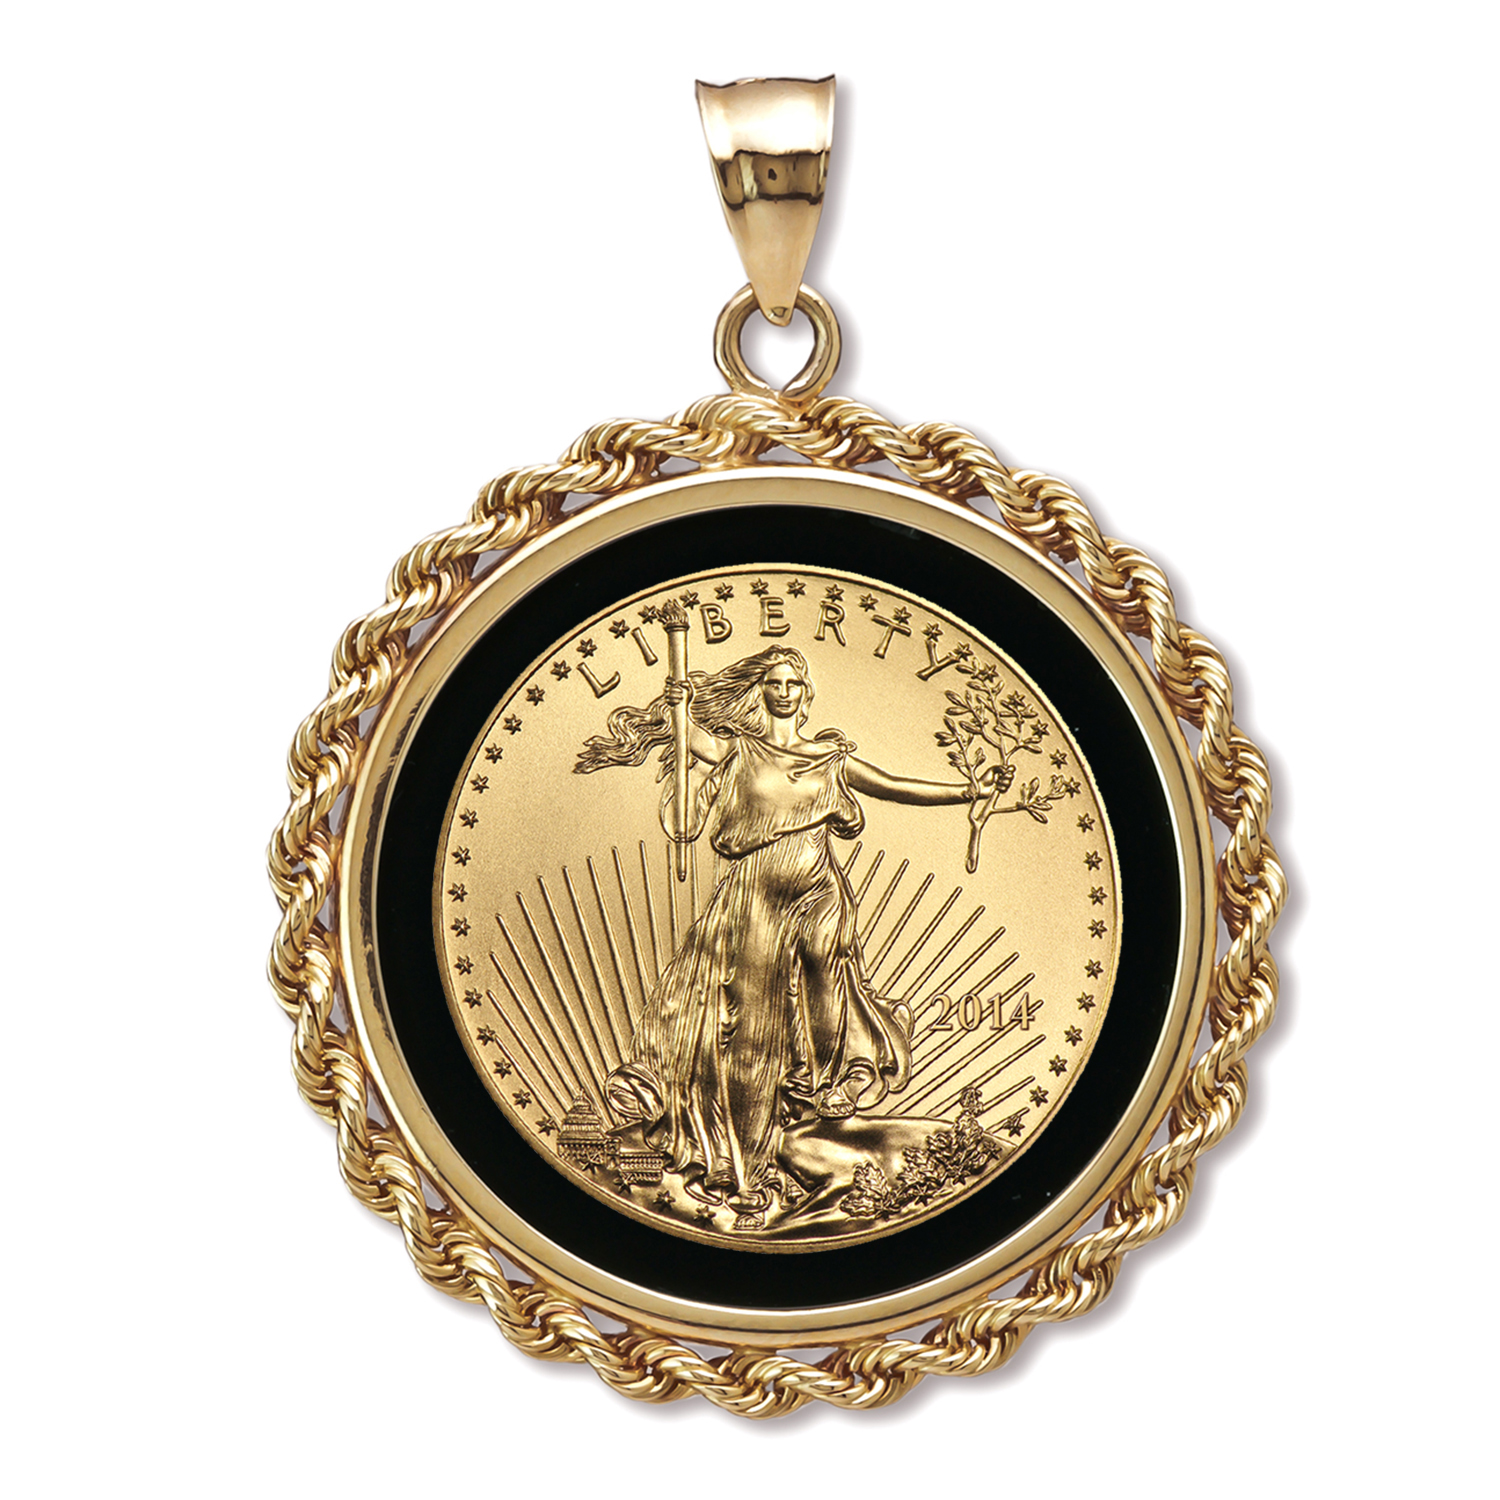 2014 1/4 oz Gold Eagle Pendant (Onyx Rope Bezel)